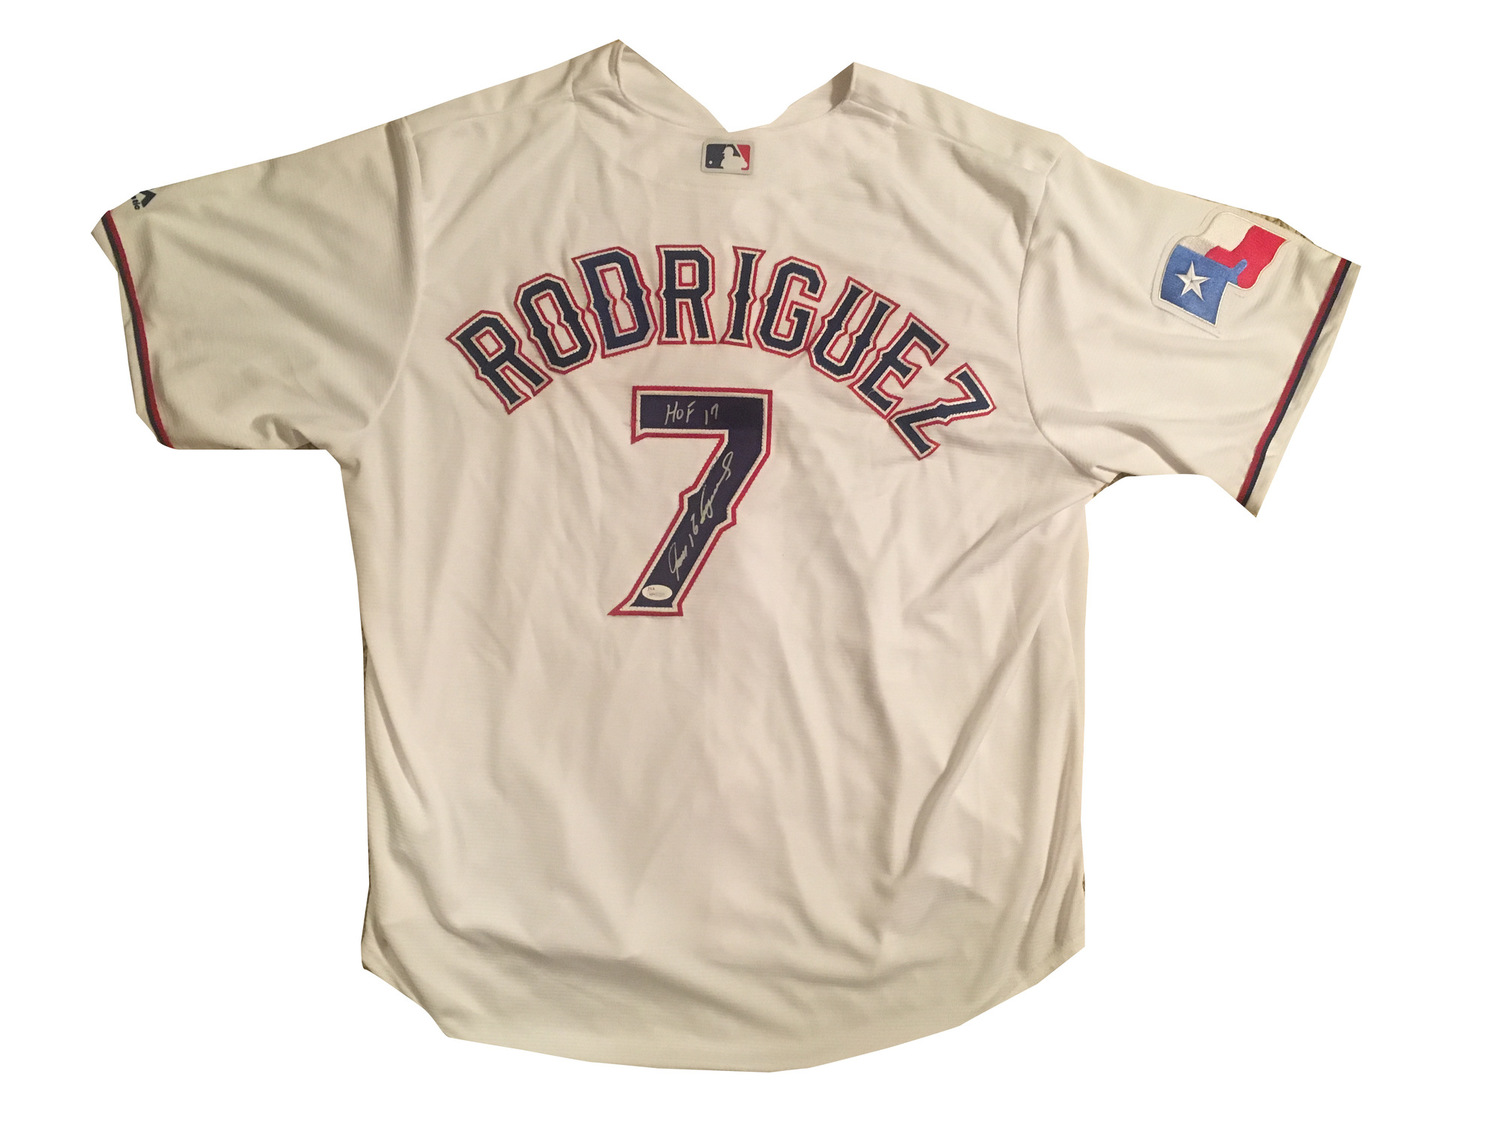 Ivan Rodriguez Signed Rangers HOF Jersey from Powers Autographs